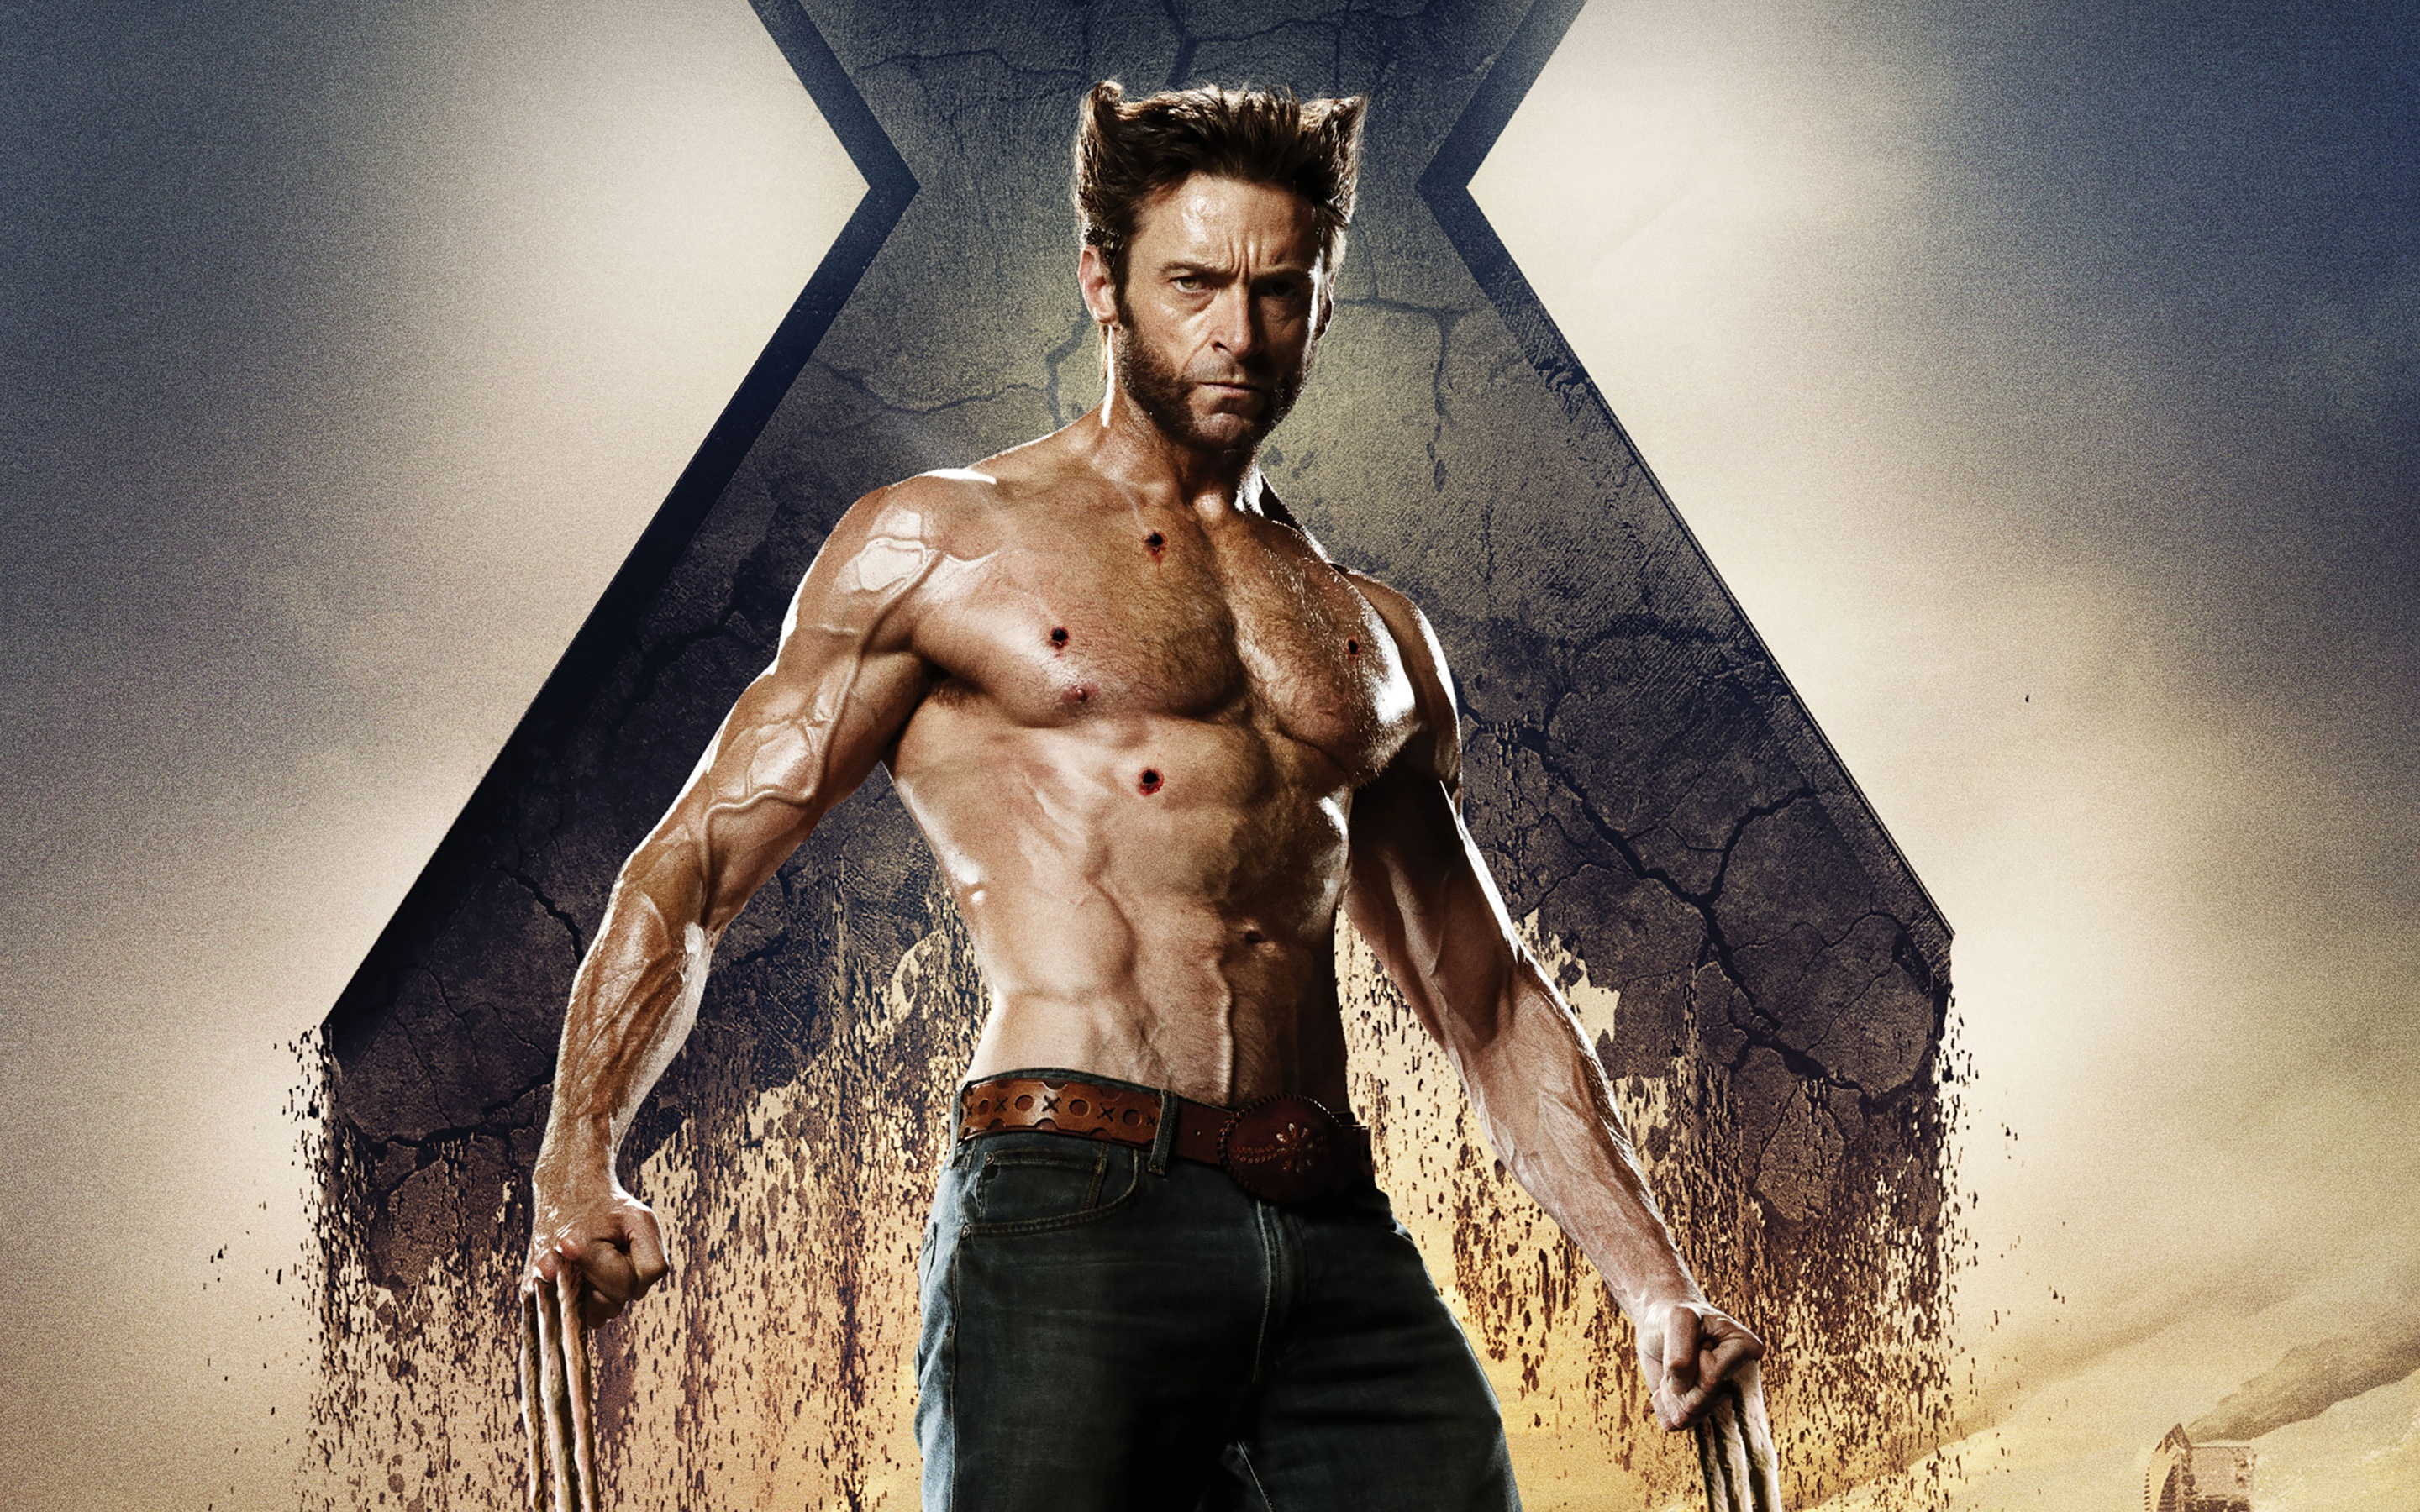 wolverine in x men days of future past wallpapers in jpg format for